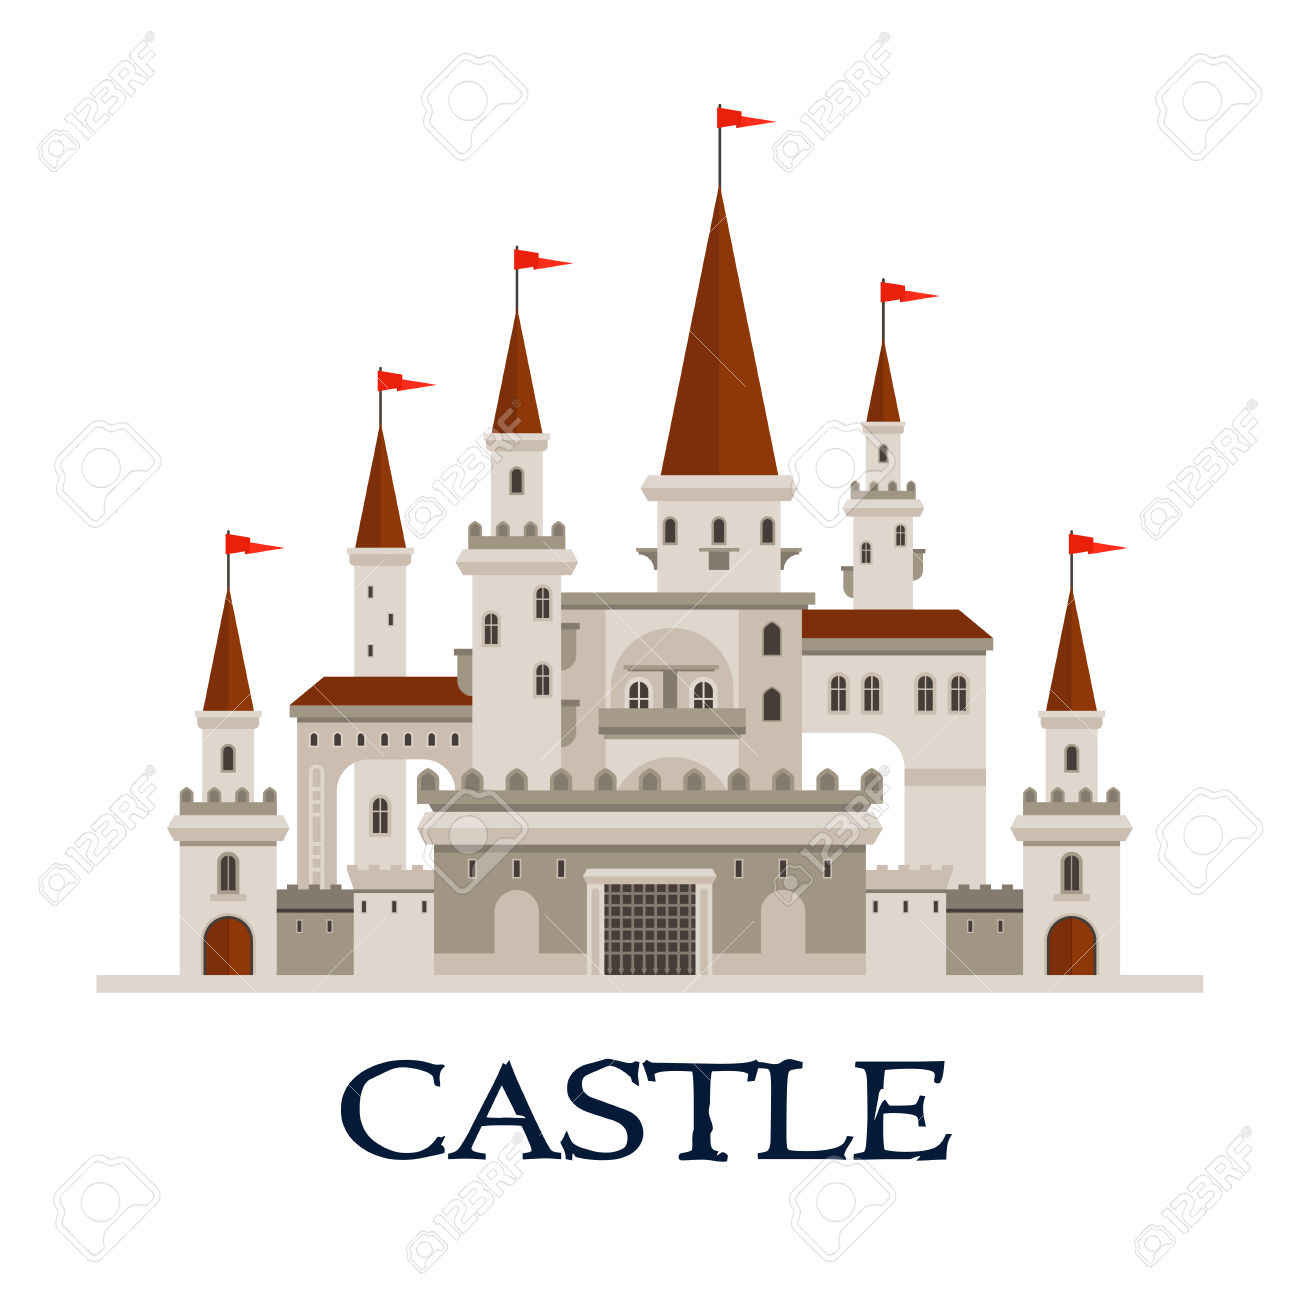 Gothic Castle Fortress Icon With Arcade Palace With Arched Windows.